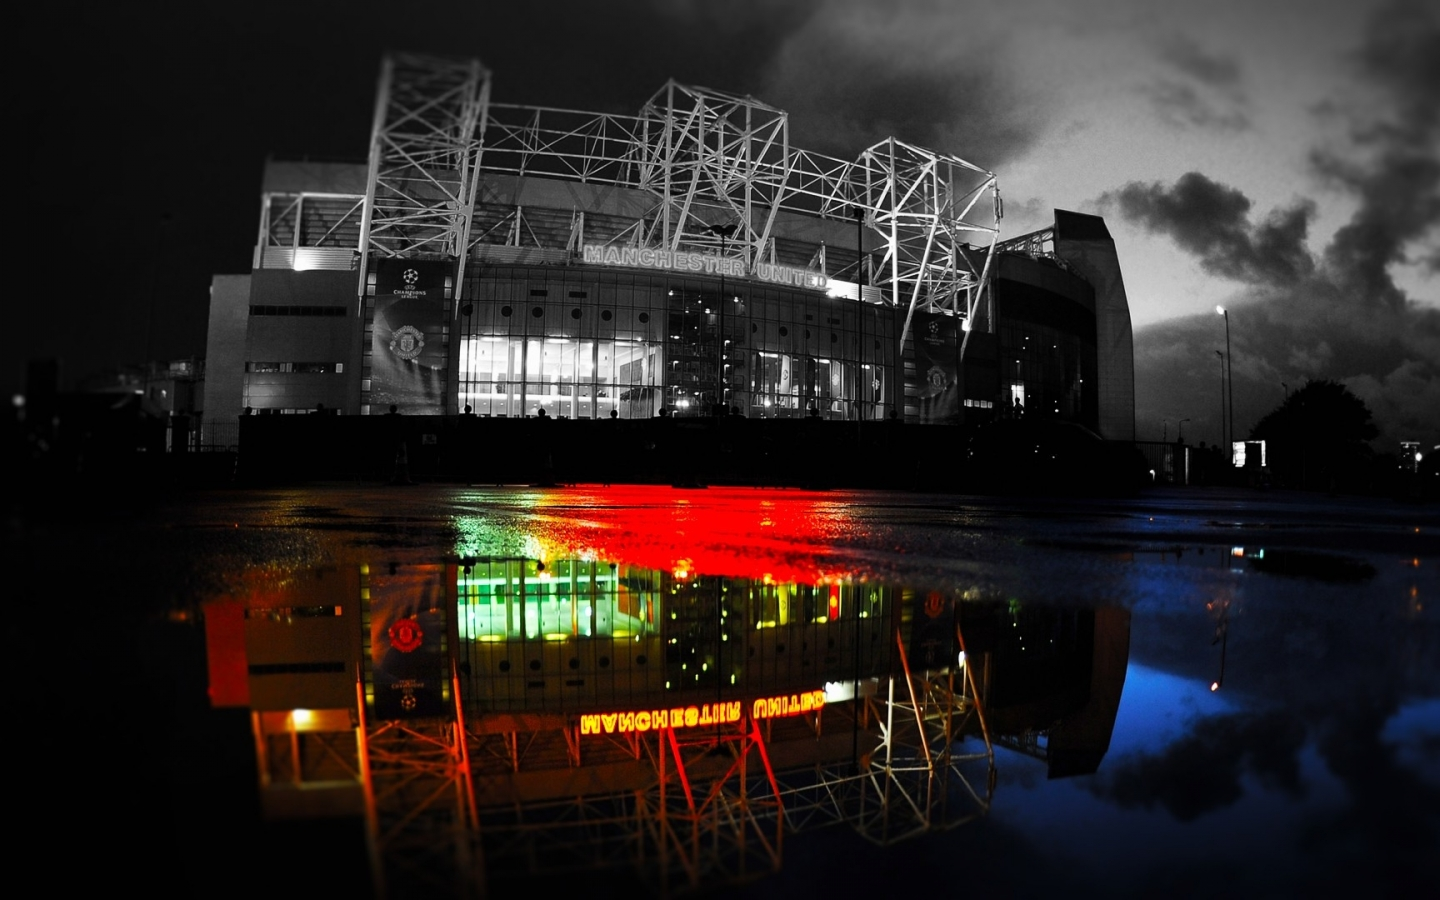 Wallpapers Hd For Mac: Old Trafford Wallpapers